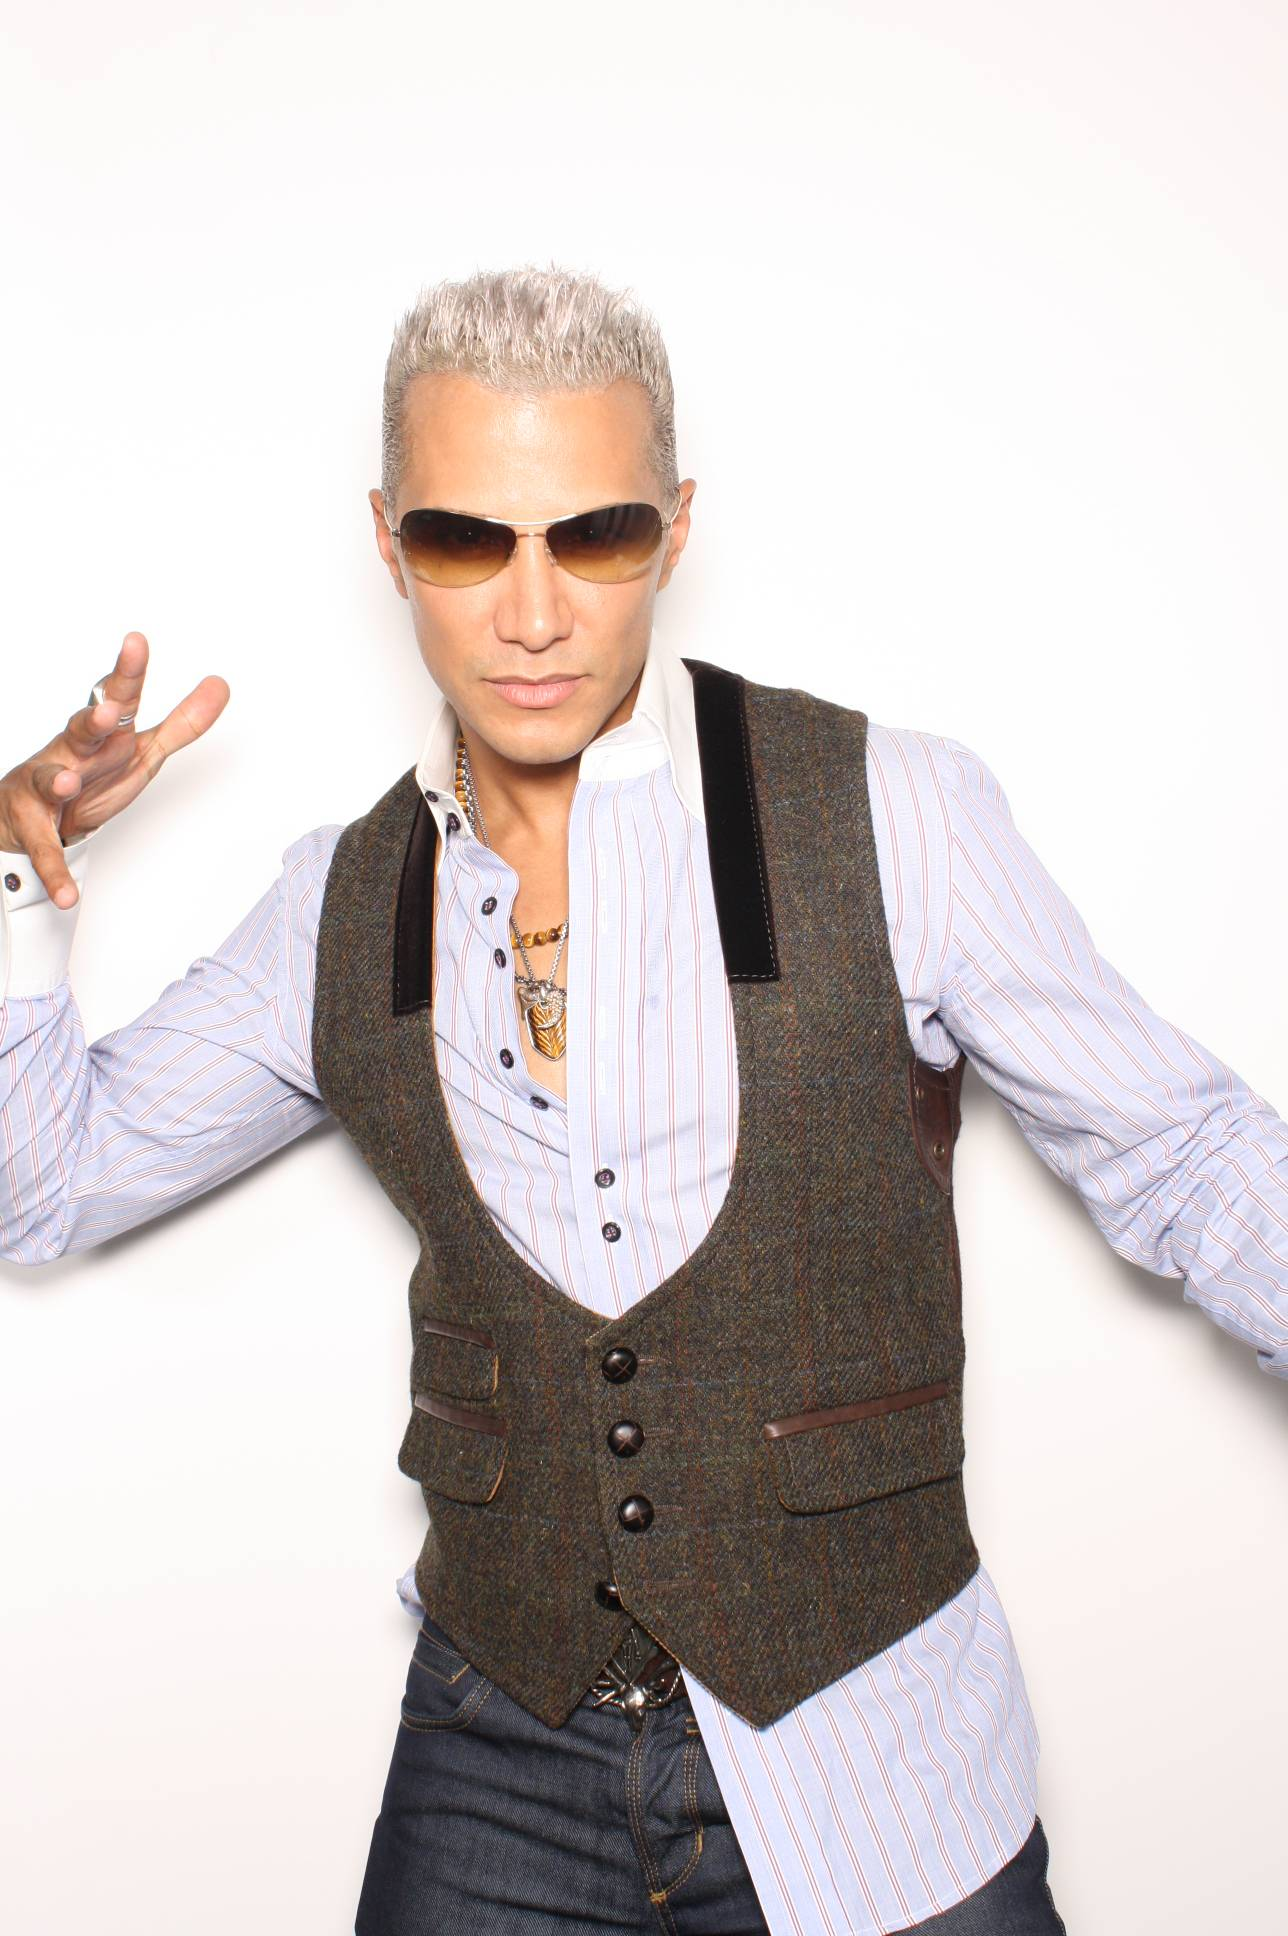 Stylist Jay Manuel Shares His Fall Fashion Trends With Haute Living: All About The Half-Tuck & 70s Luxury